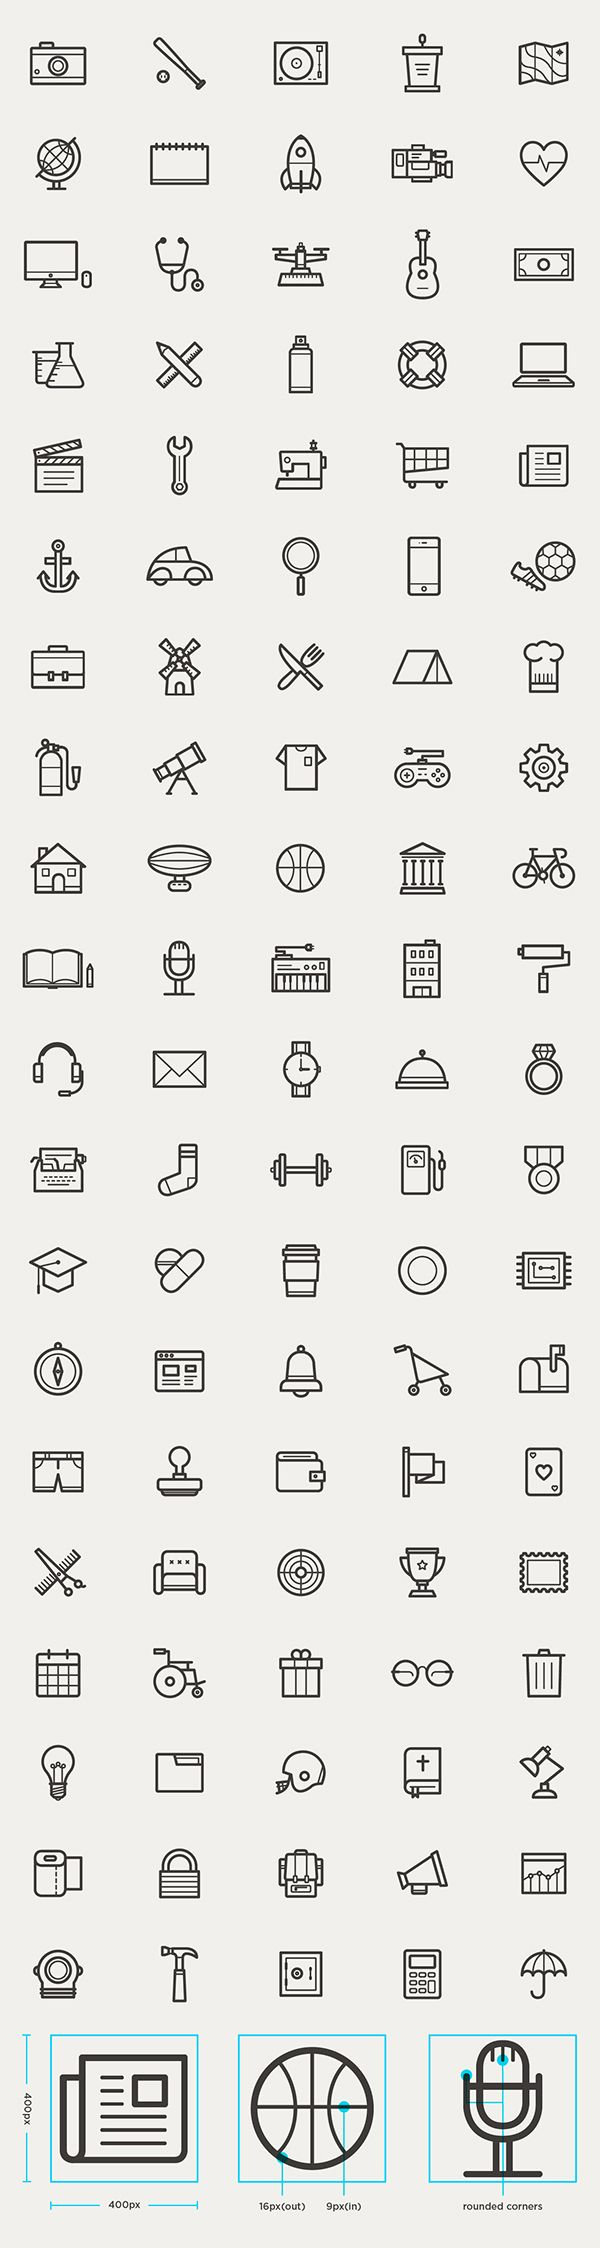 Wireless icon line iconset iconsmind - Free Outline Icons For Ui Designers